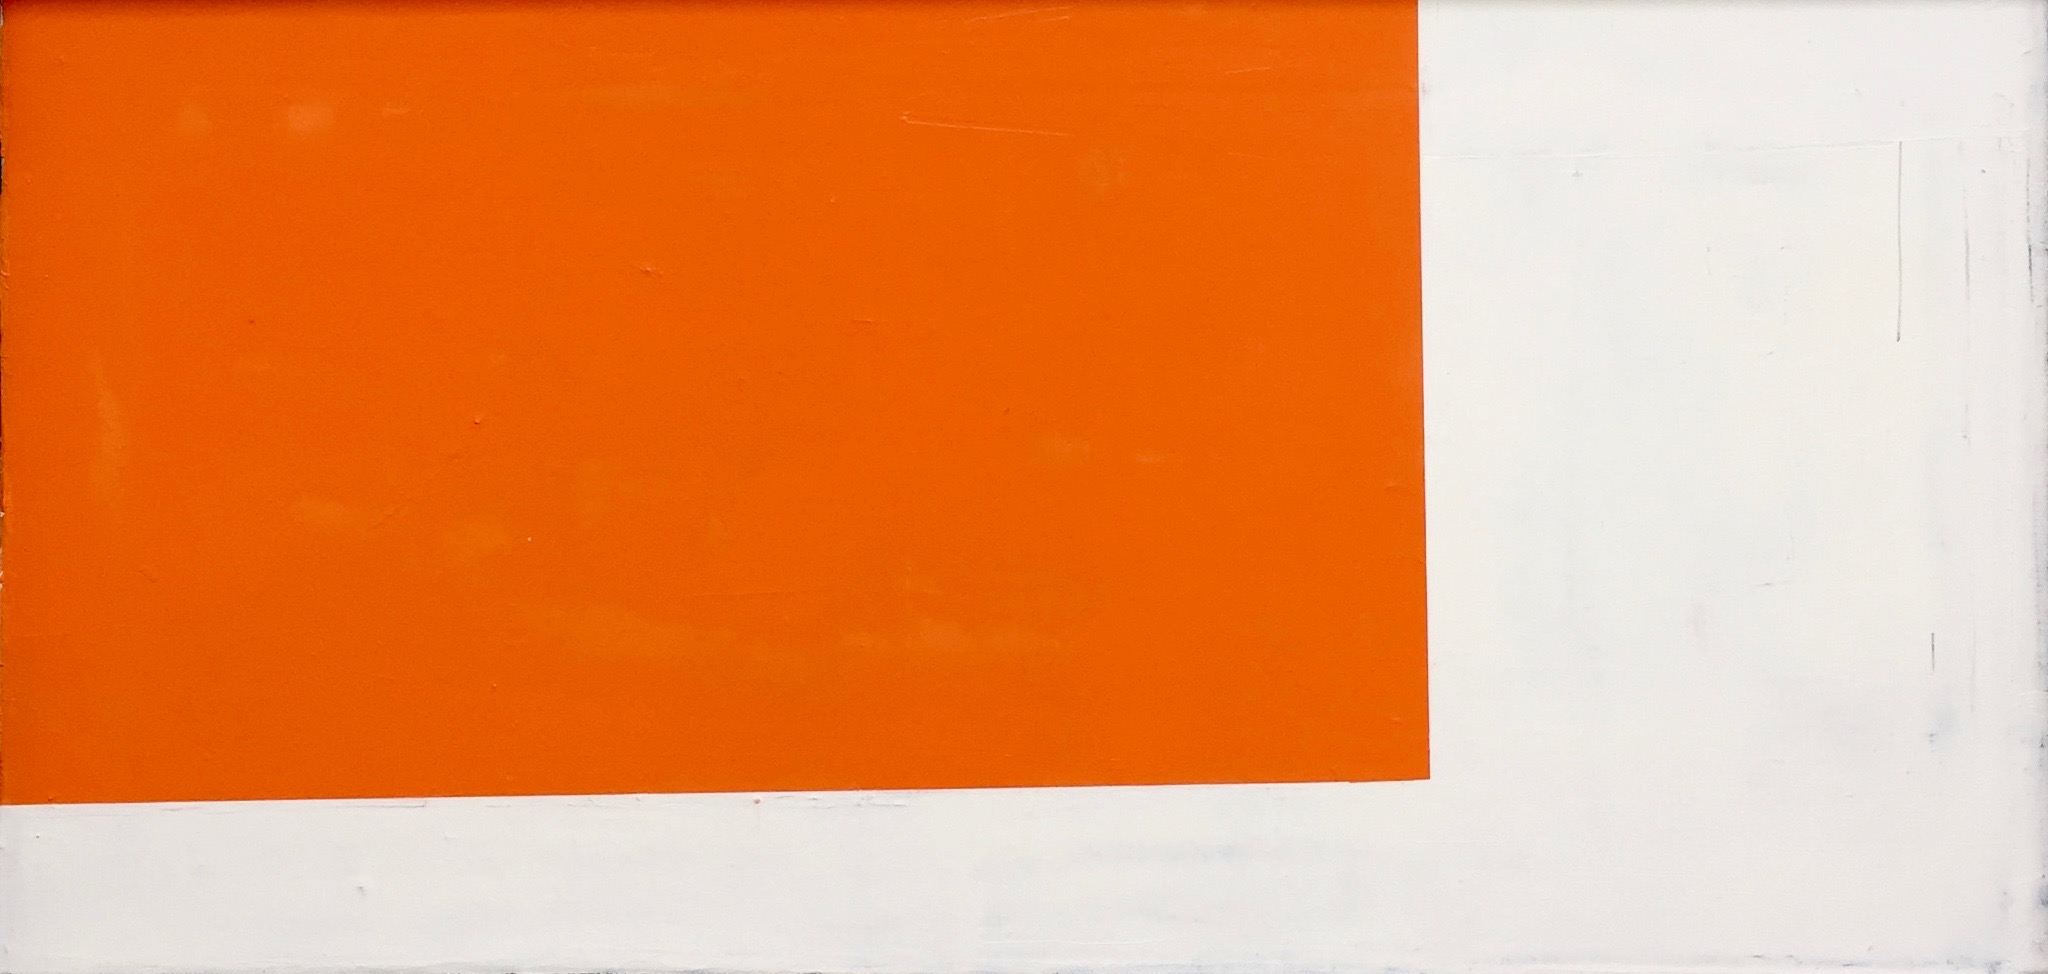 Untitled Orange